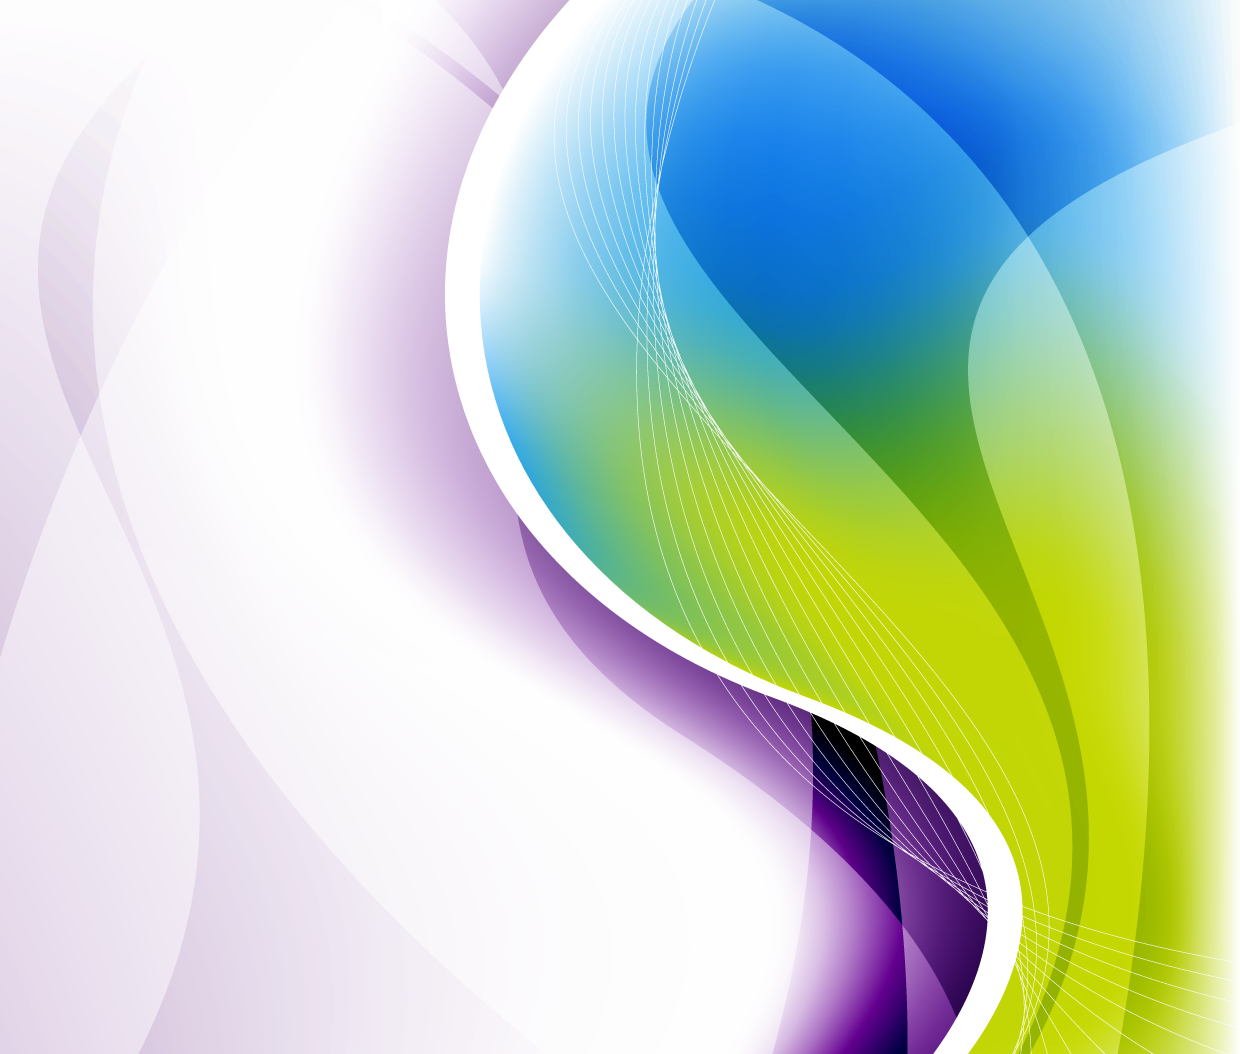 abstract background vector illustration - photo #27